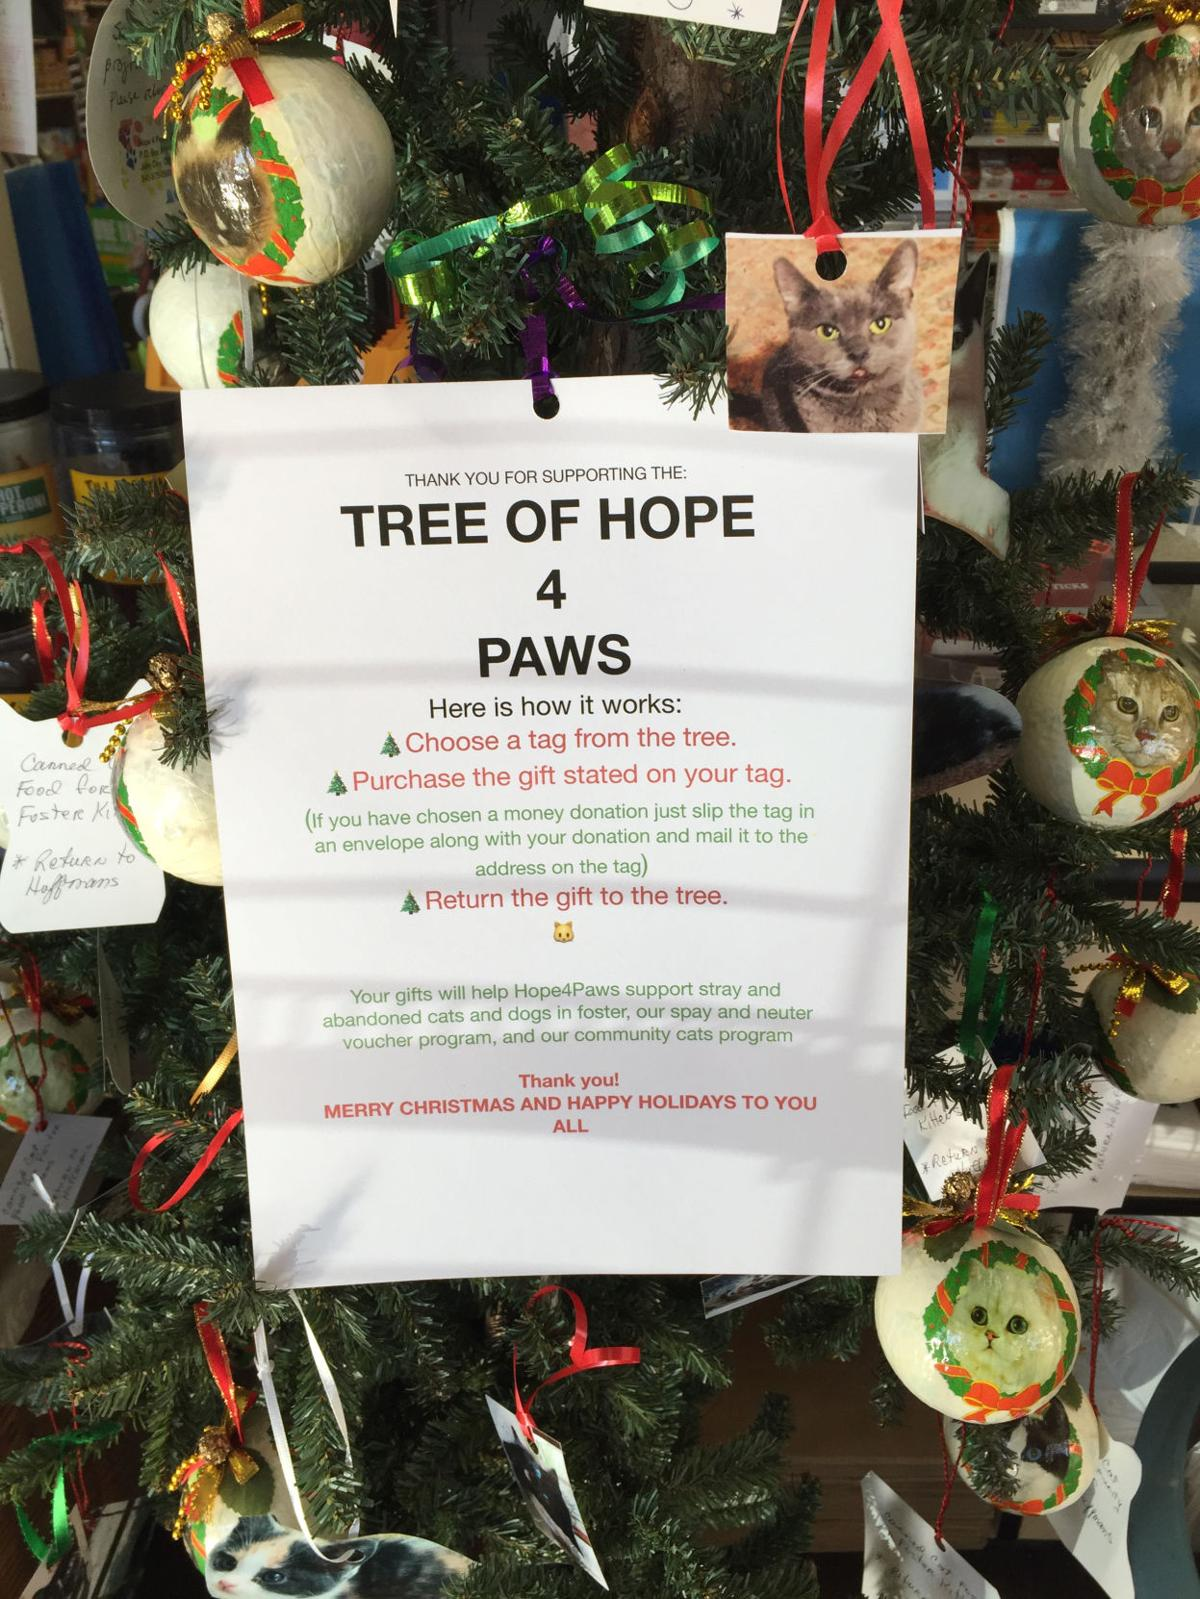 Hope 4 Paws has tree of hope in Prairie City | Life ...